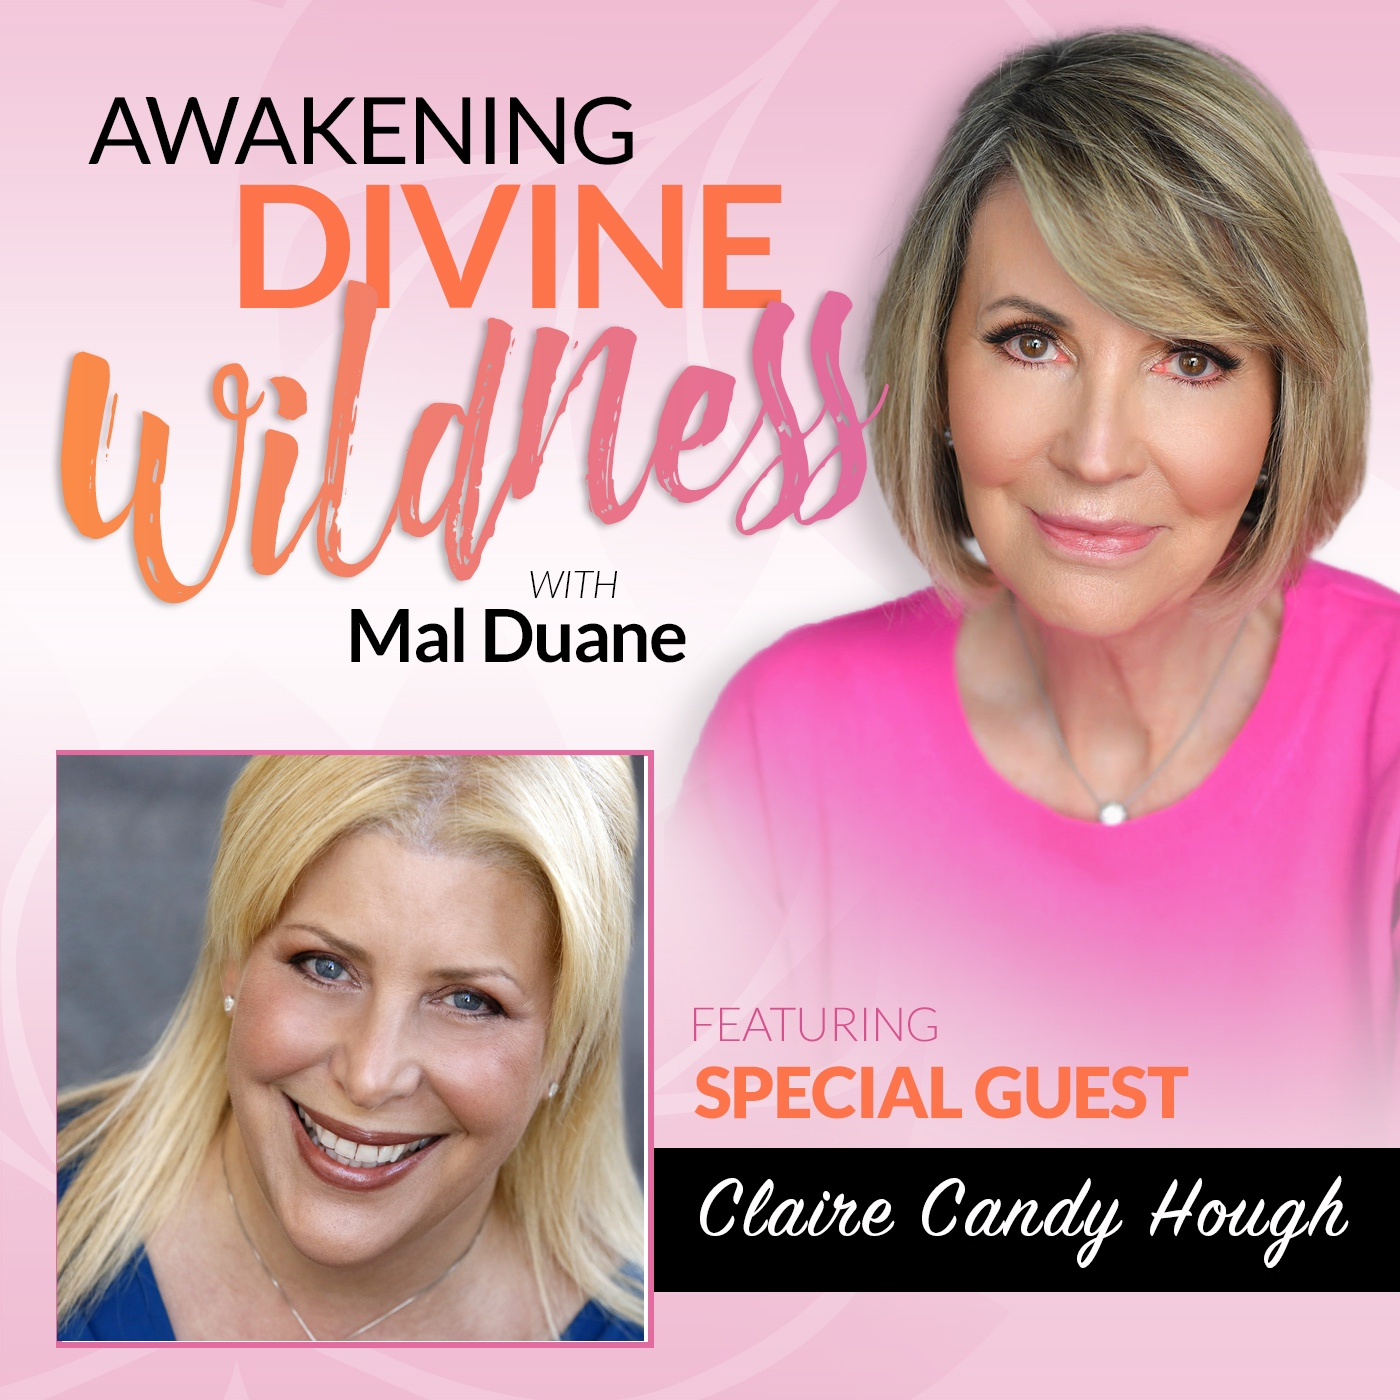 Meet Claire Candy Hough, Angel Communicator, TV Host and Best selling Author